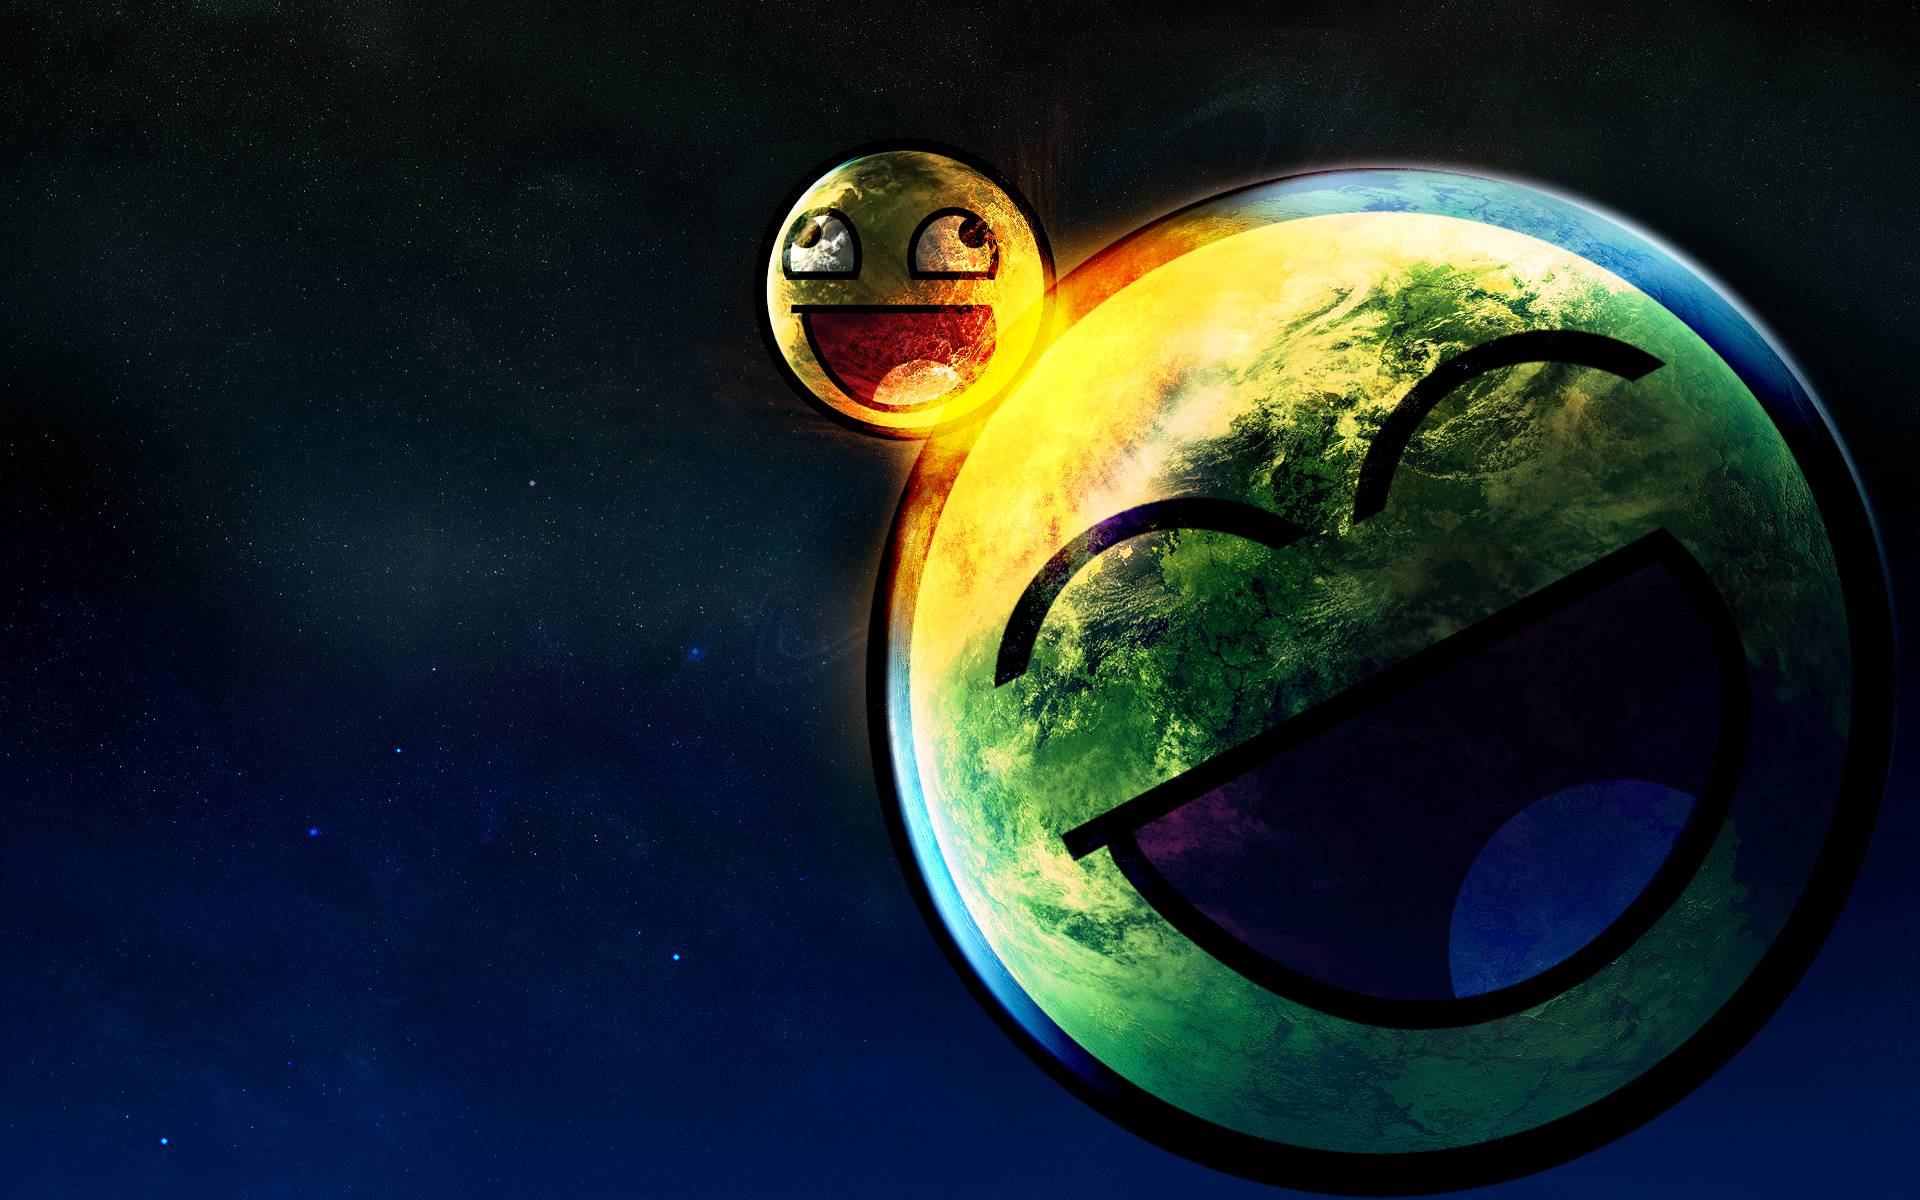 Awesome smiley face space